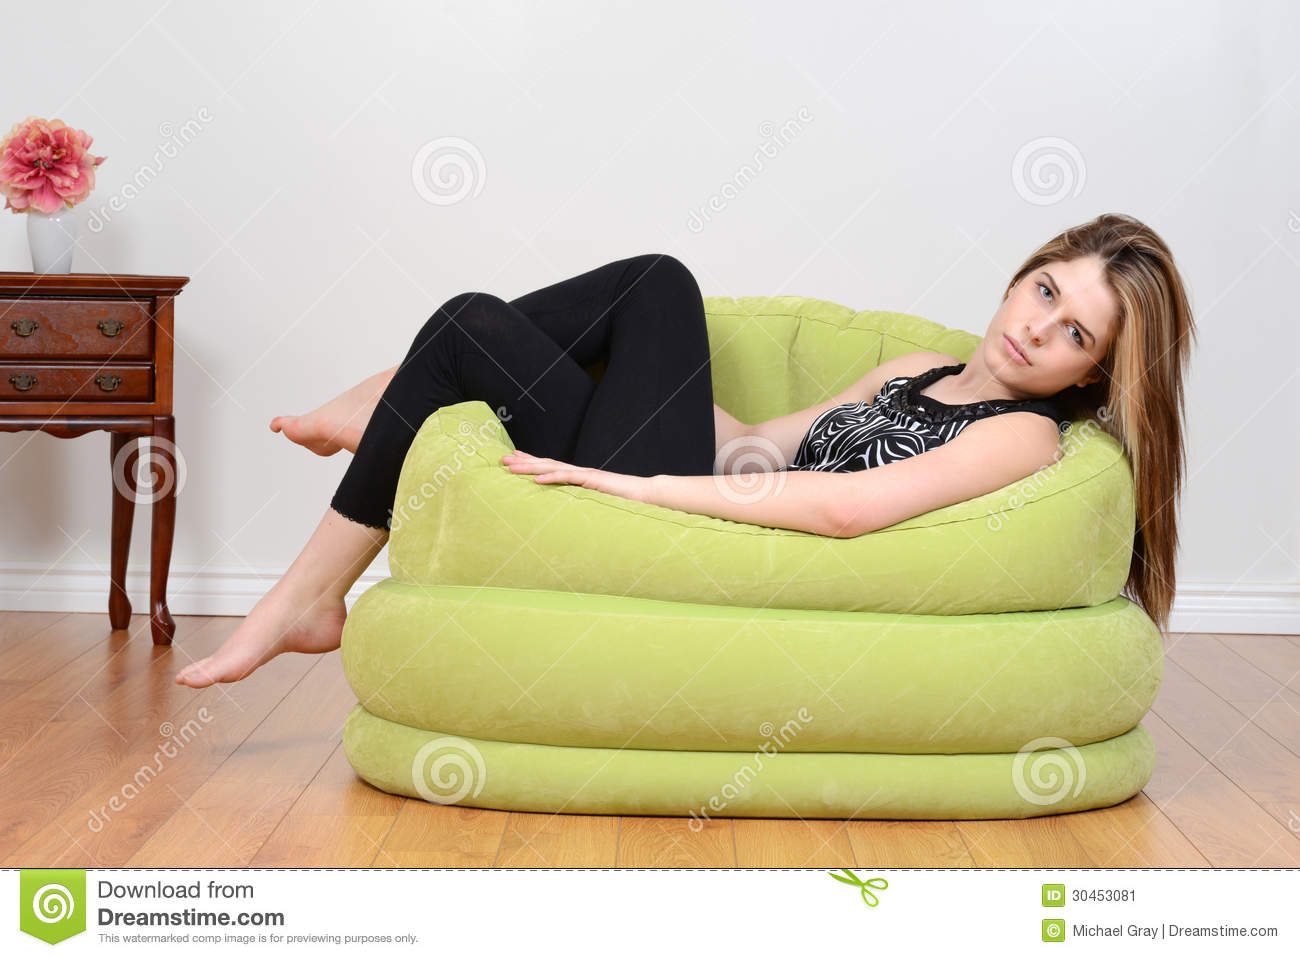 Teen Relaxing In Green Bean Bag Chair Stock Image Image 30453081